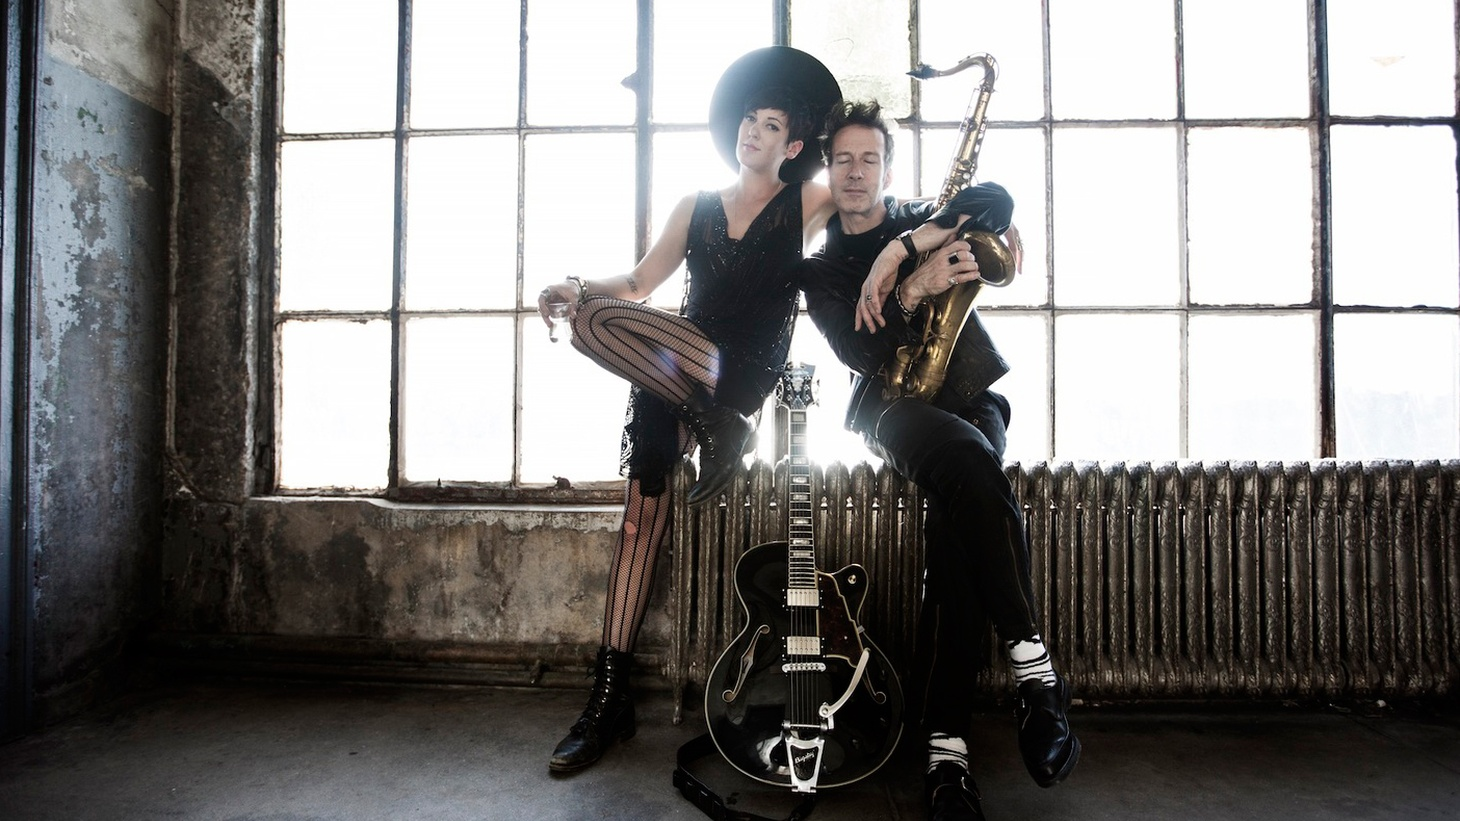 Stuart Matthewman is the Grammy-winning co-founder and saxophonist of Sade. Vanessa Bley is the daughter of renowned jazz pianist Paul Bley. Together, they are Twin Danger.